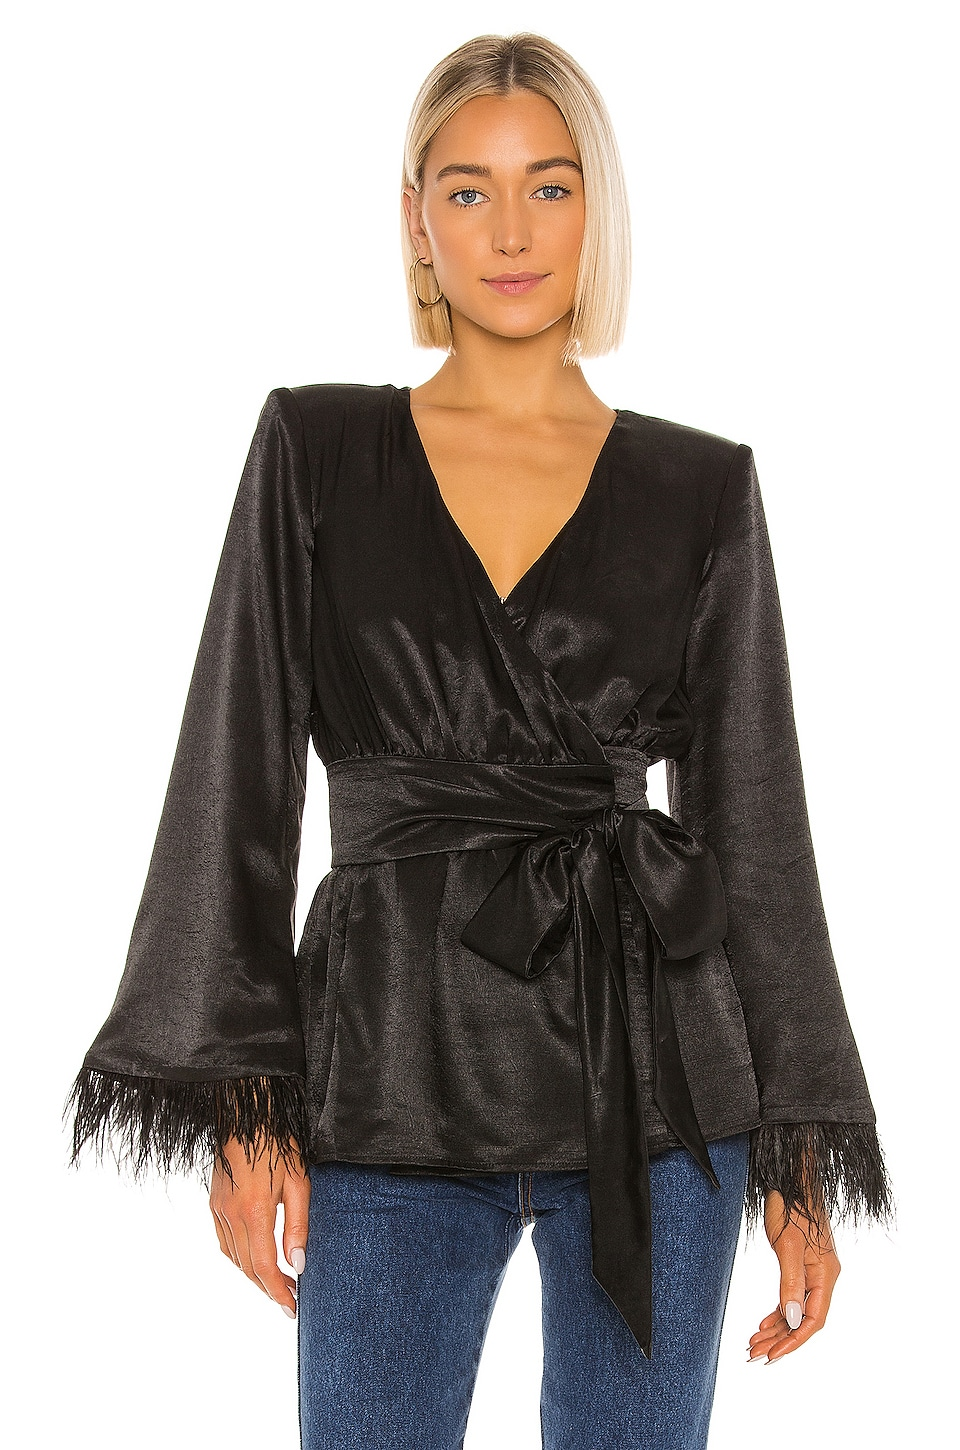 House of Harlow 1960 x REVOLVE Viviana Jacket in Noir